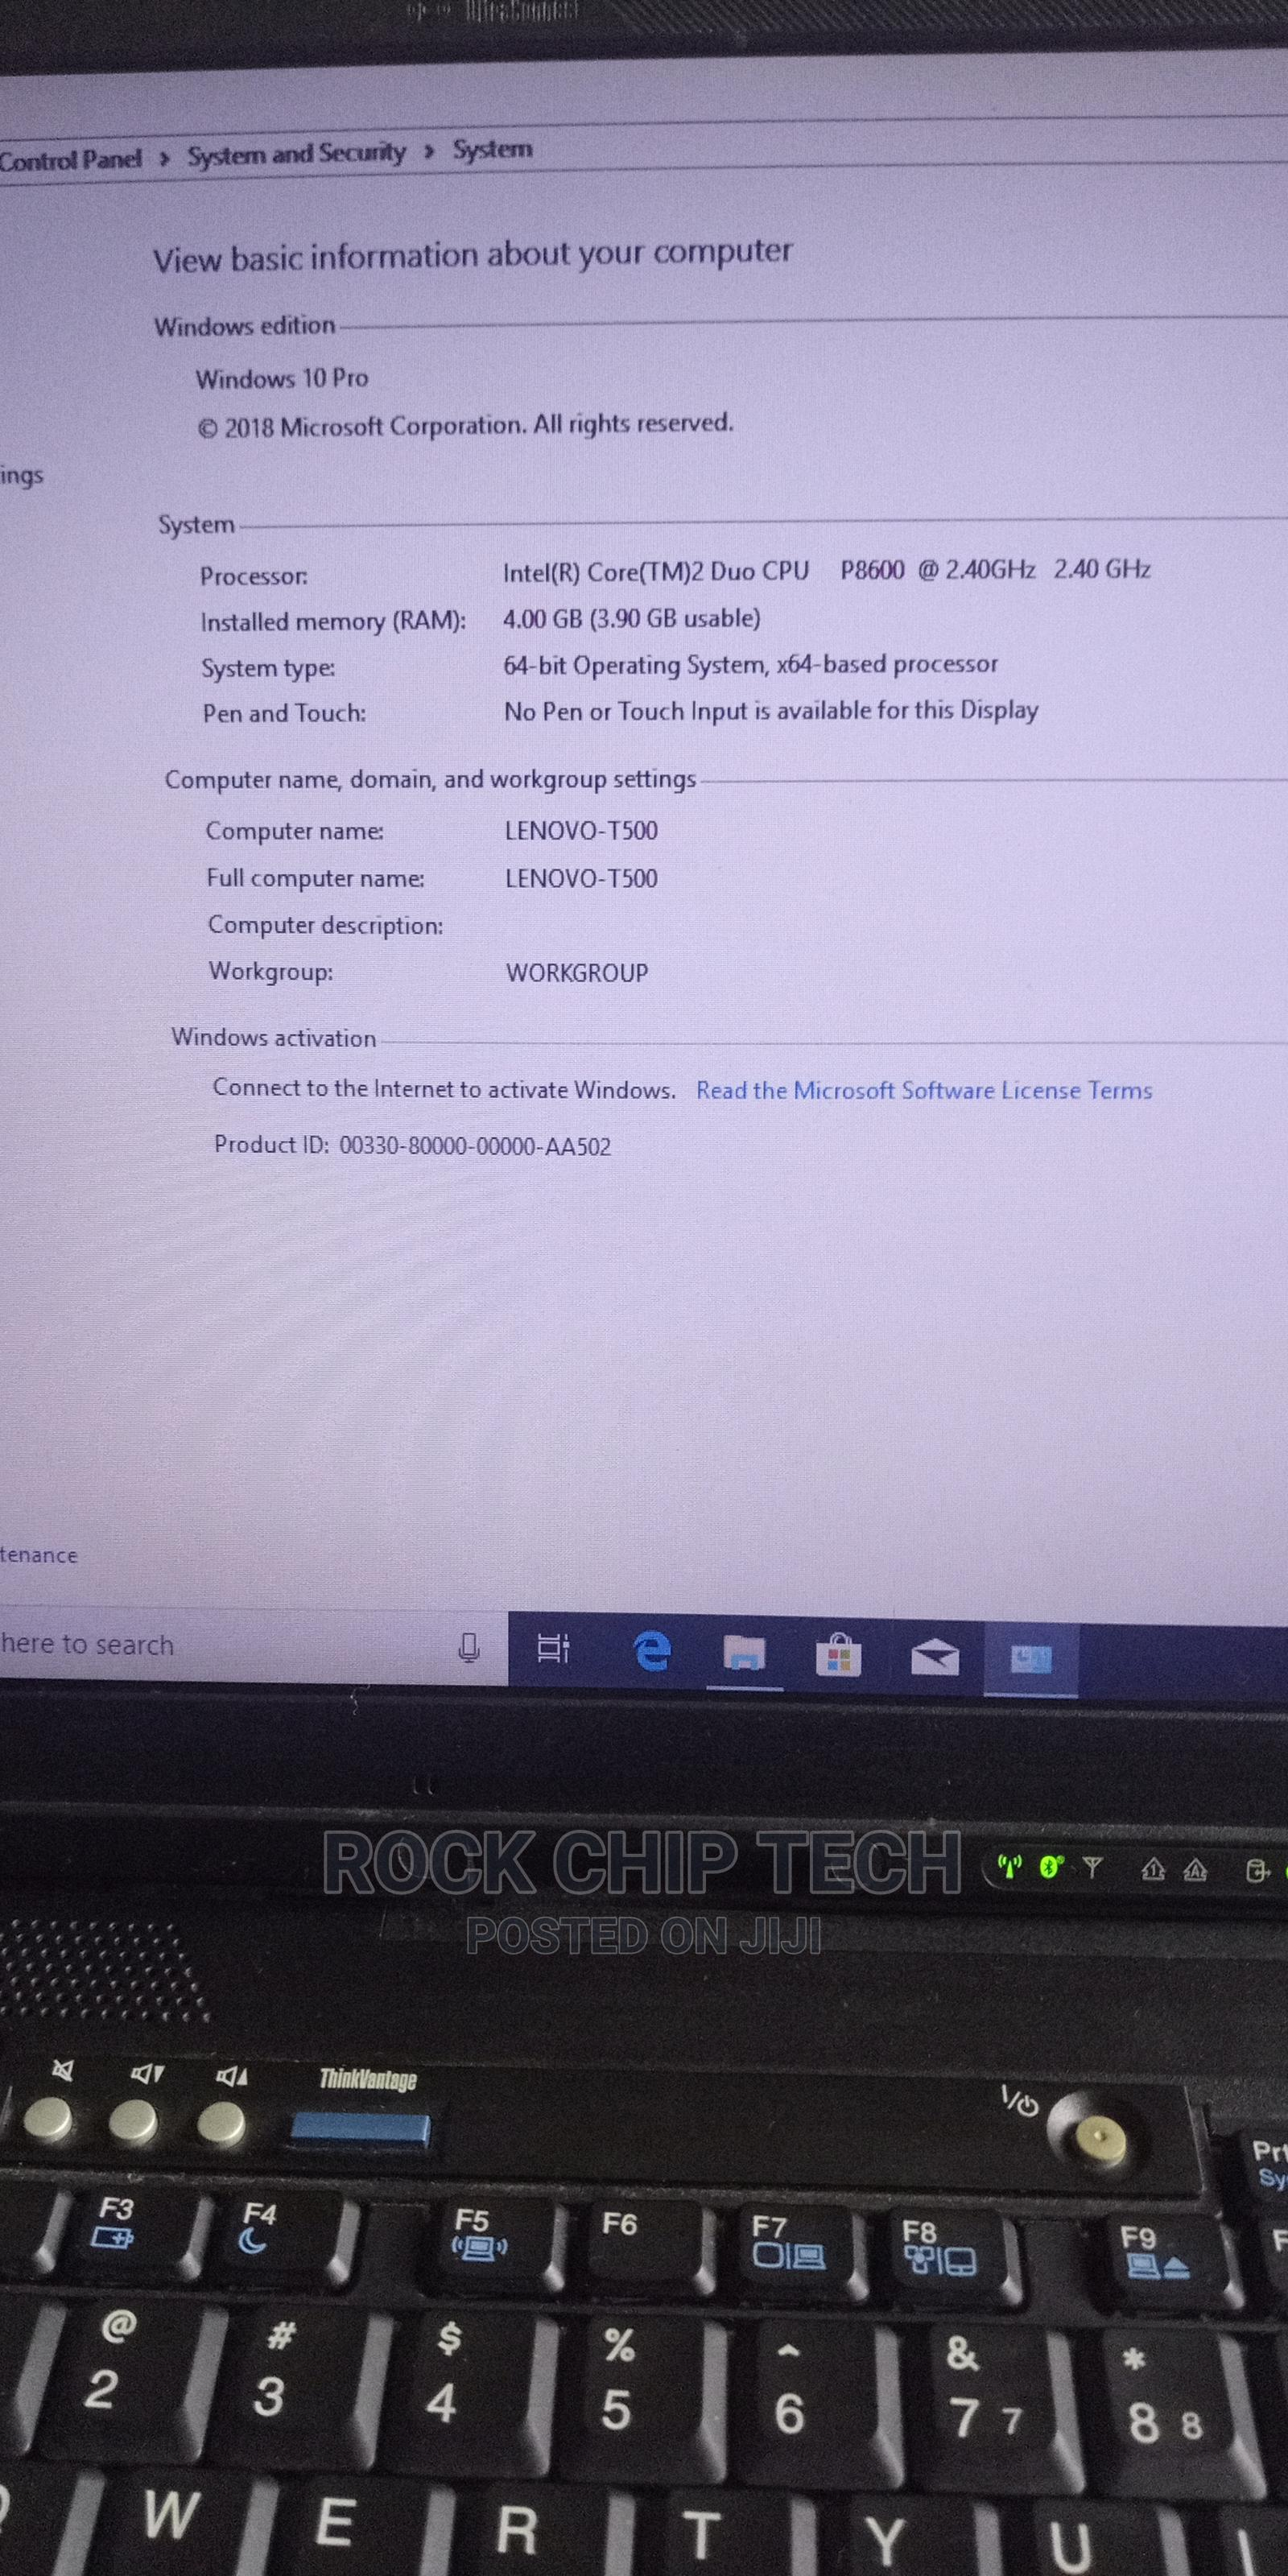 Laptop Lenovo ThinkPad T500 4GB Intel Core 2 Duo HDD 256GB | Laptops & Computers for sale in Aba North, Abia State, Nigeria